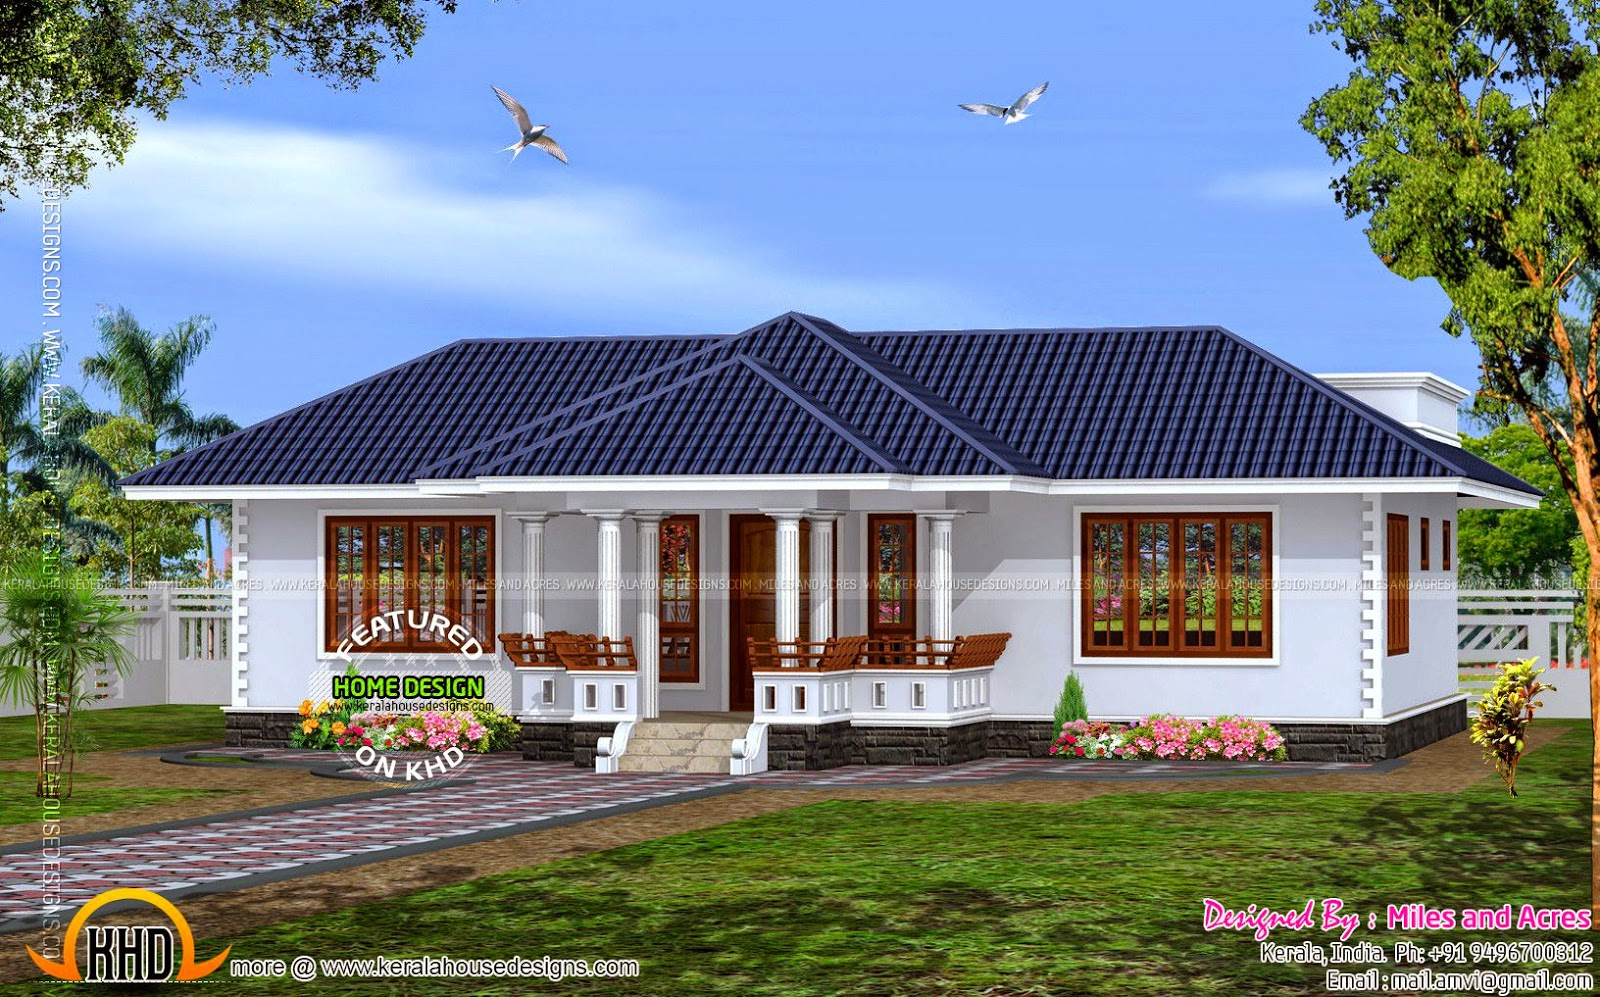 Siddu buzz online house plan of single floor house kerala home design One floor house plans